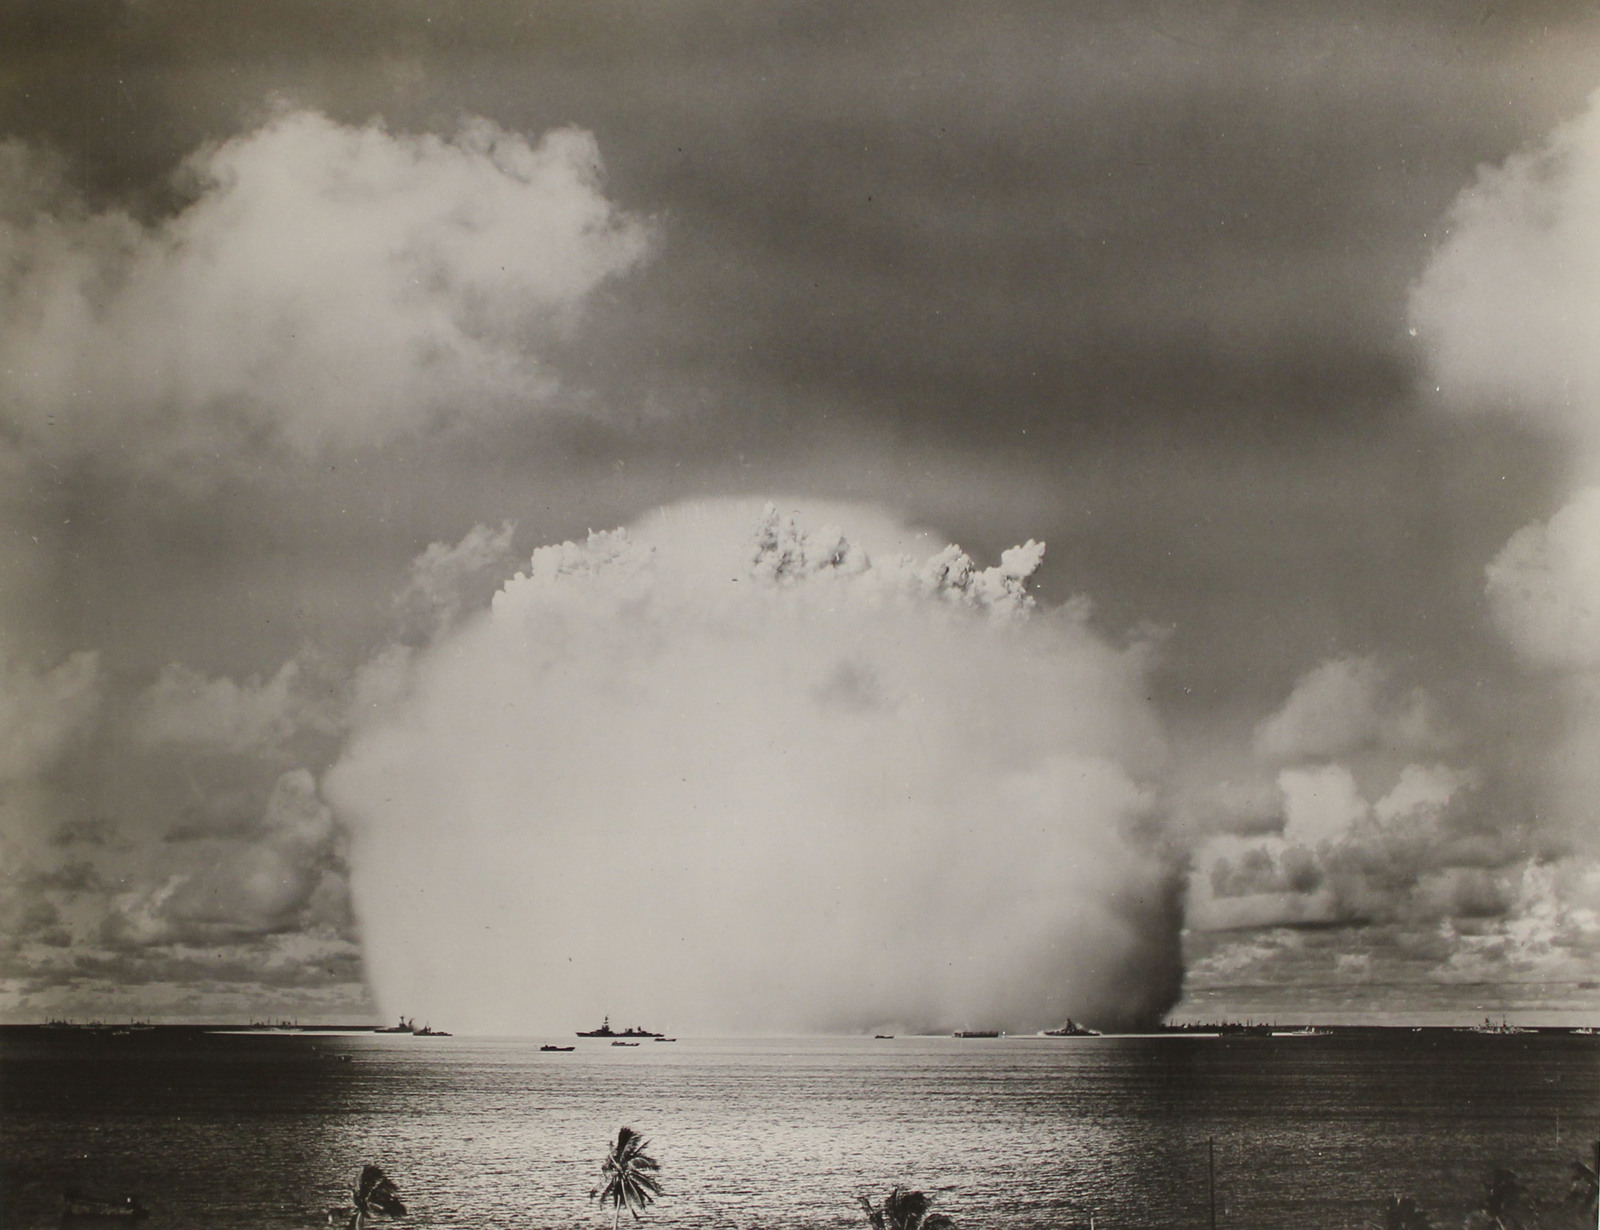 atomic-cloud-from-the-able-day-explosion-over-bikini-lagoon-5dadaa-1600